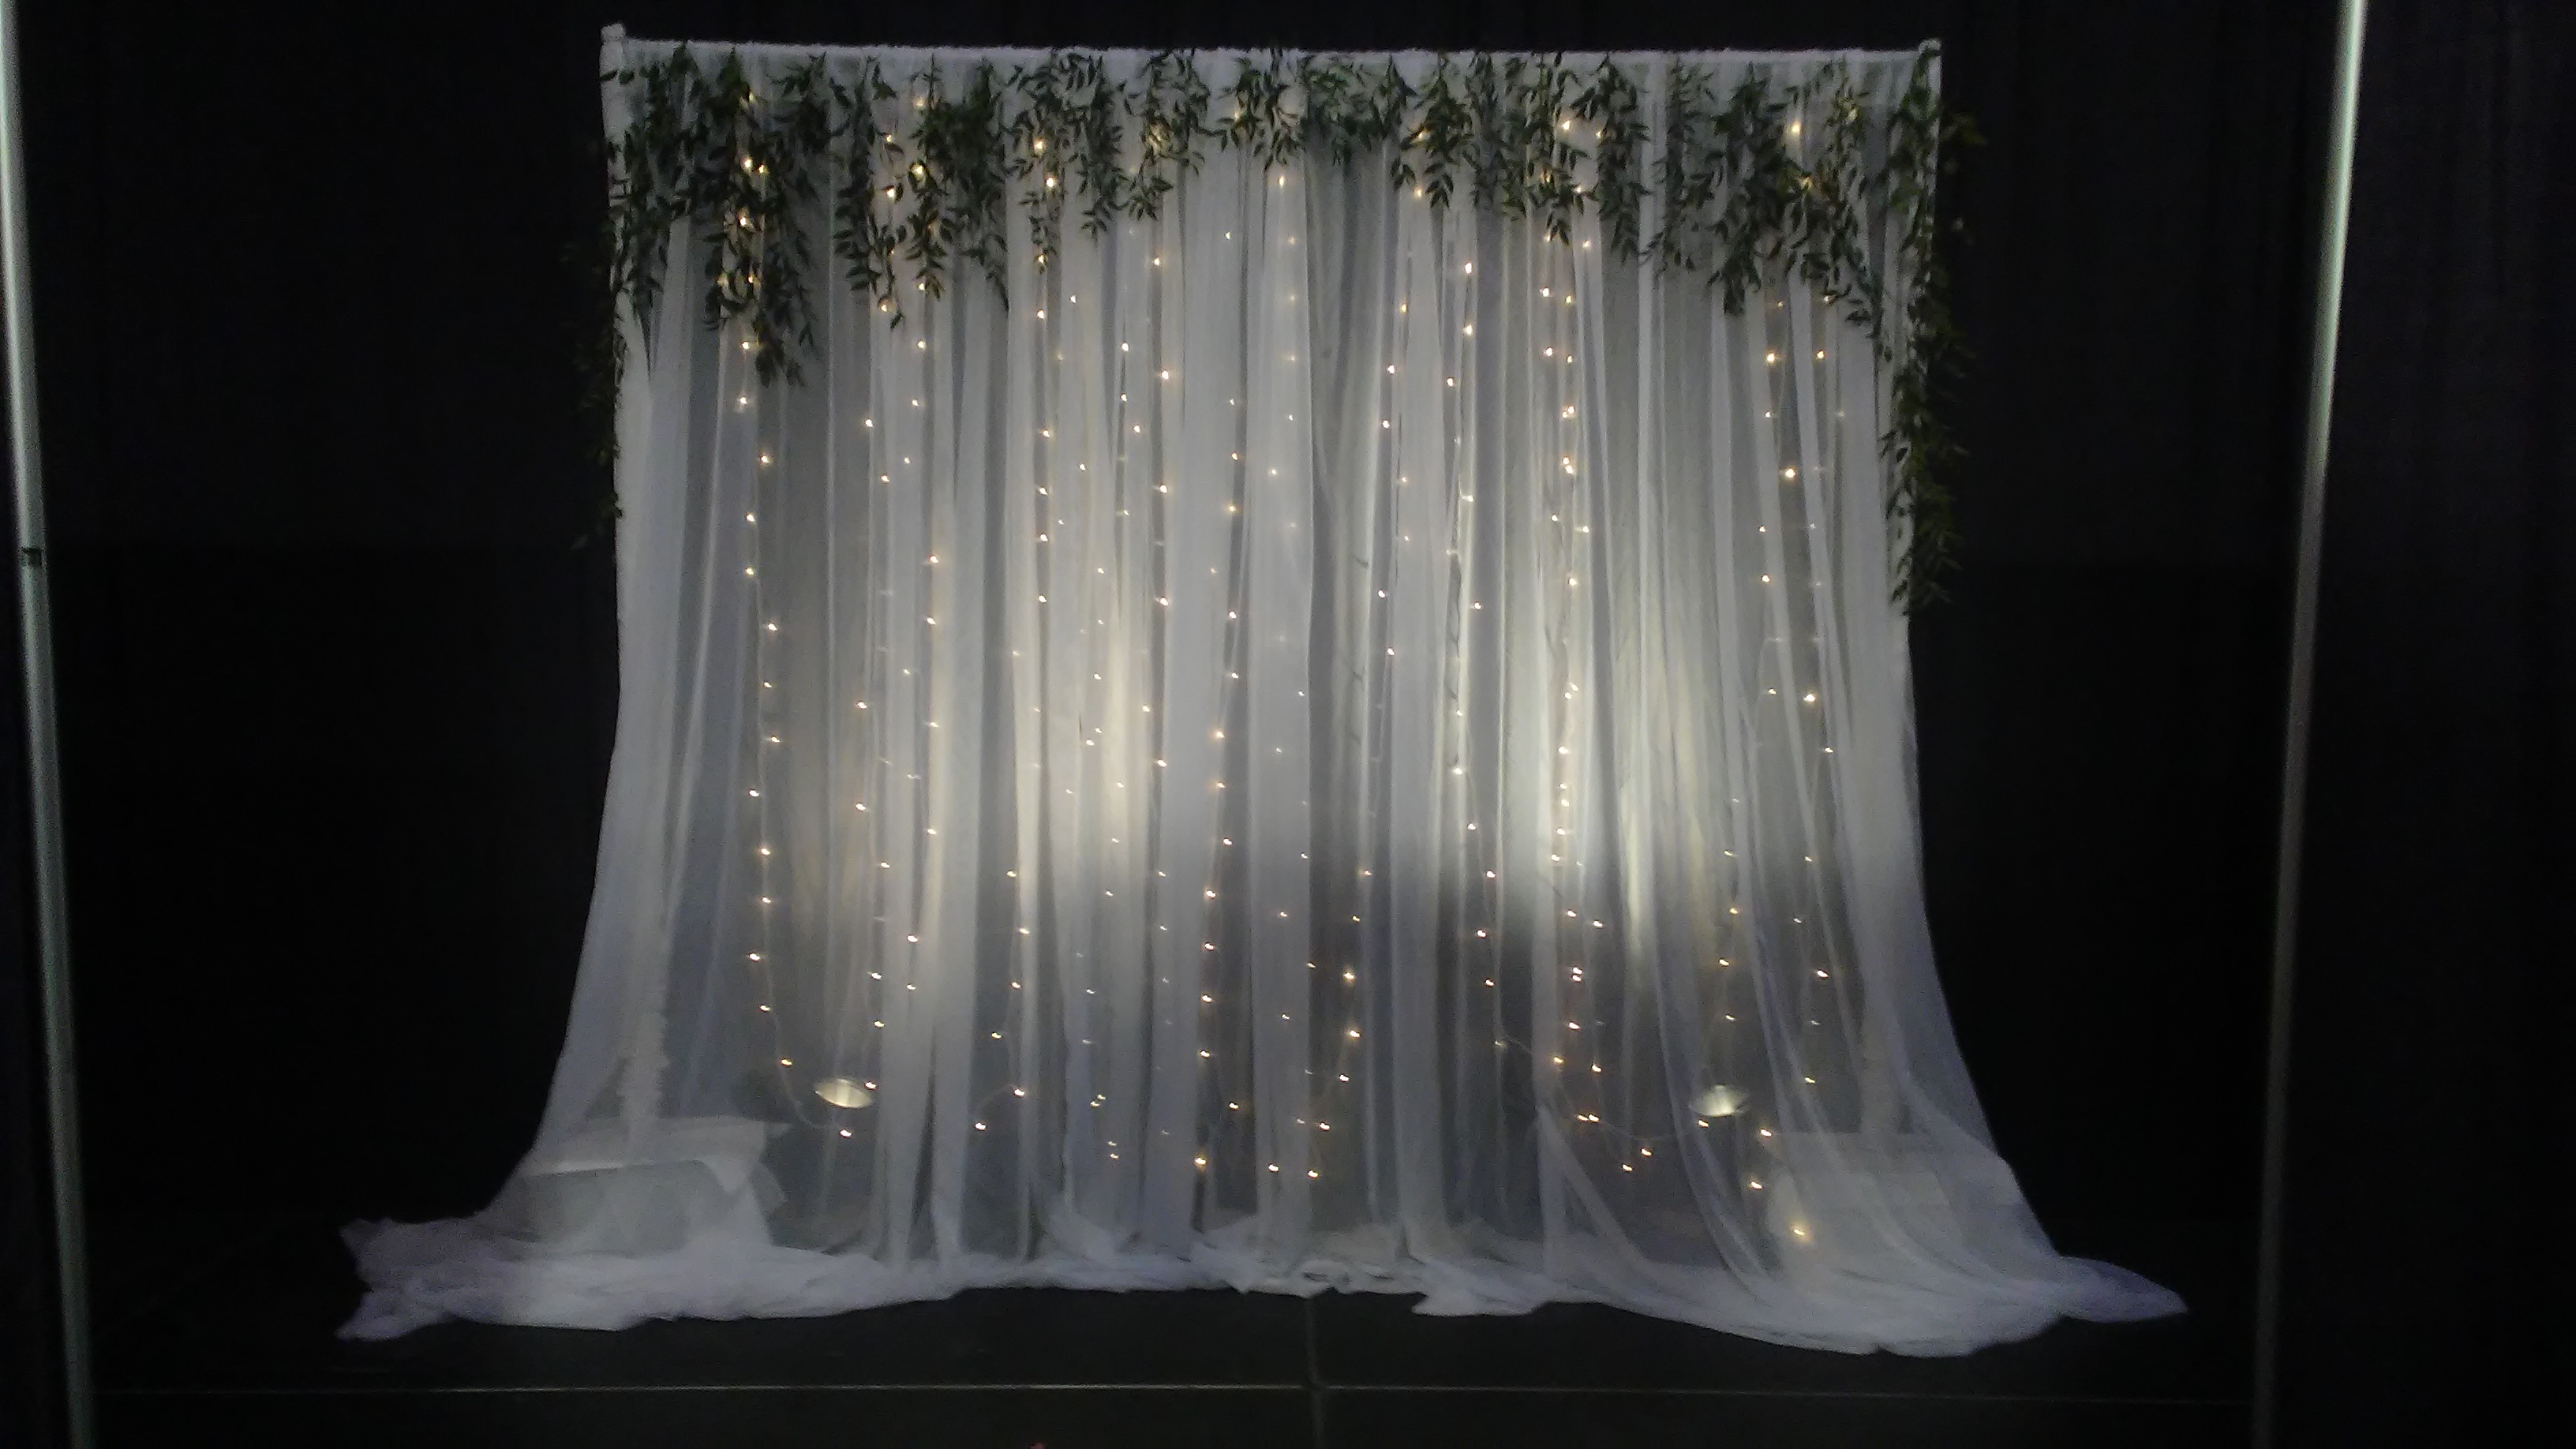 Sparkle Wall with a greenery valance gorgeous!